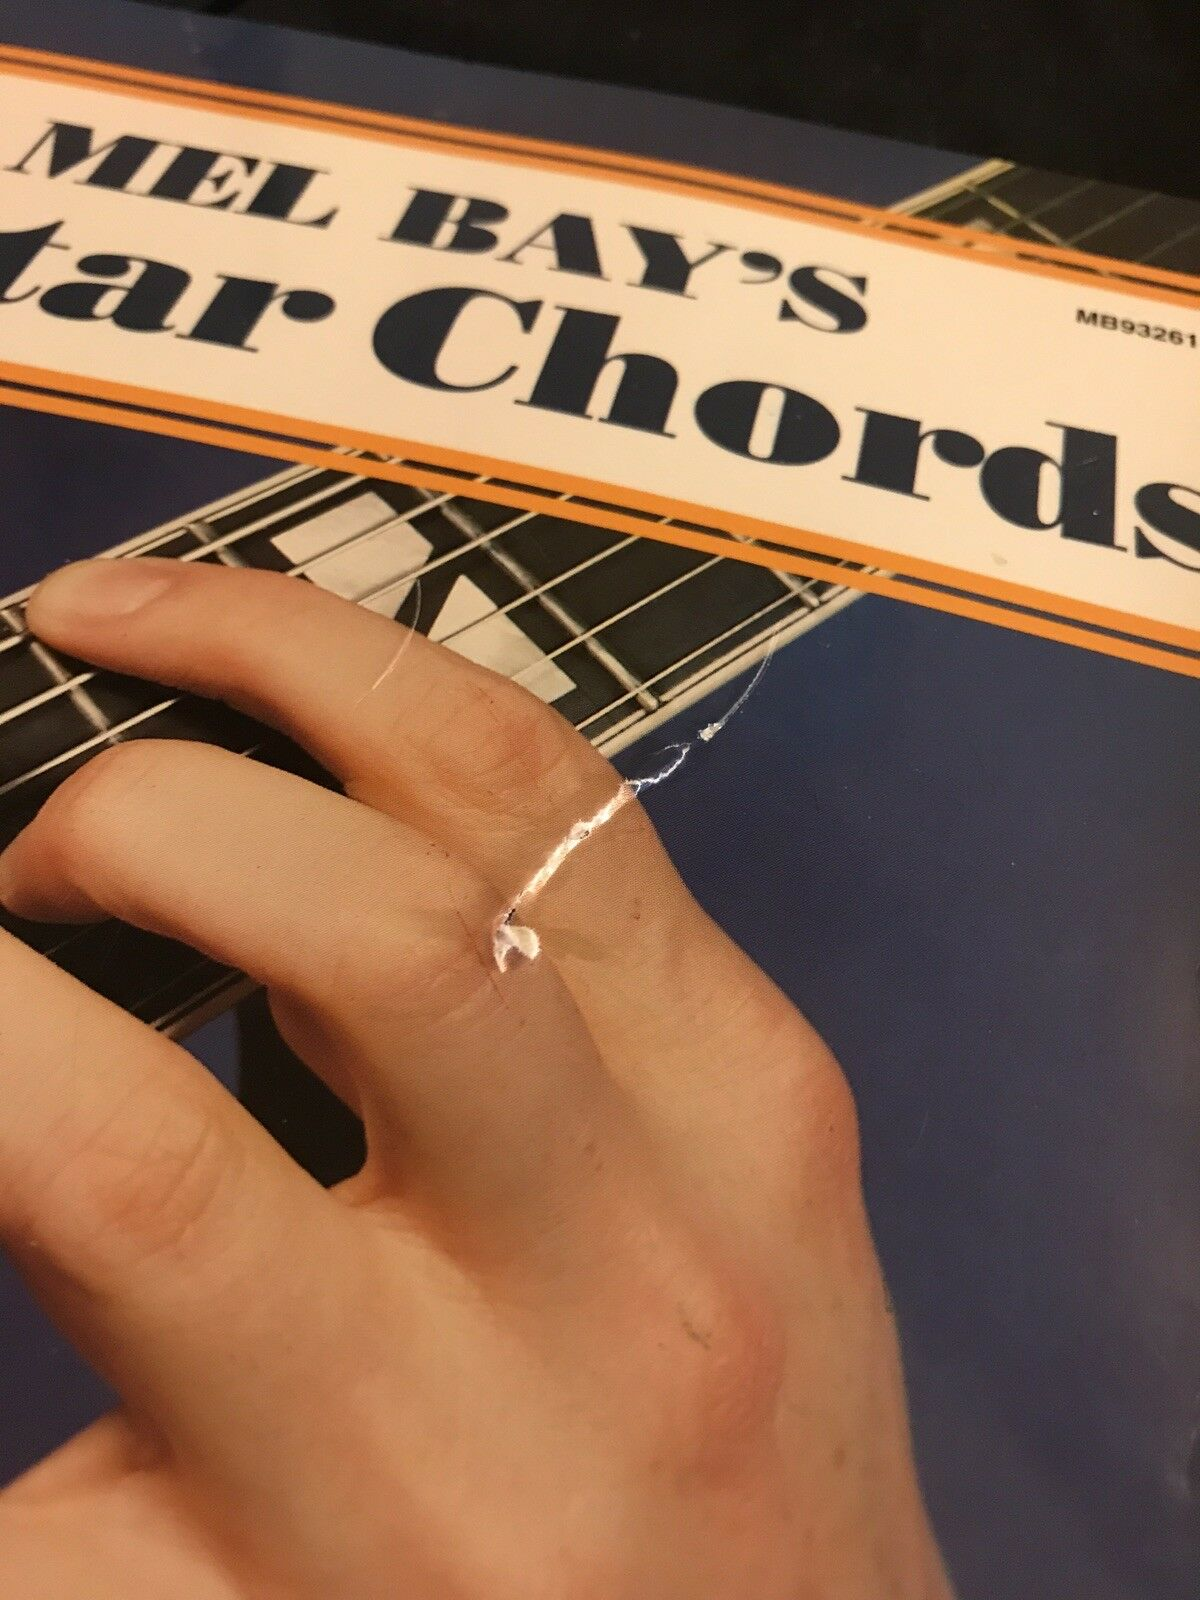 Guitar Chords By Mel Publications Inc Staff Bay 1959 Paperback